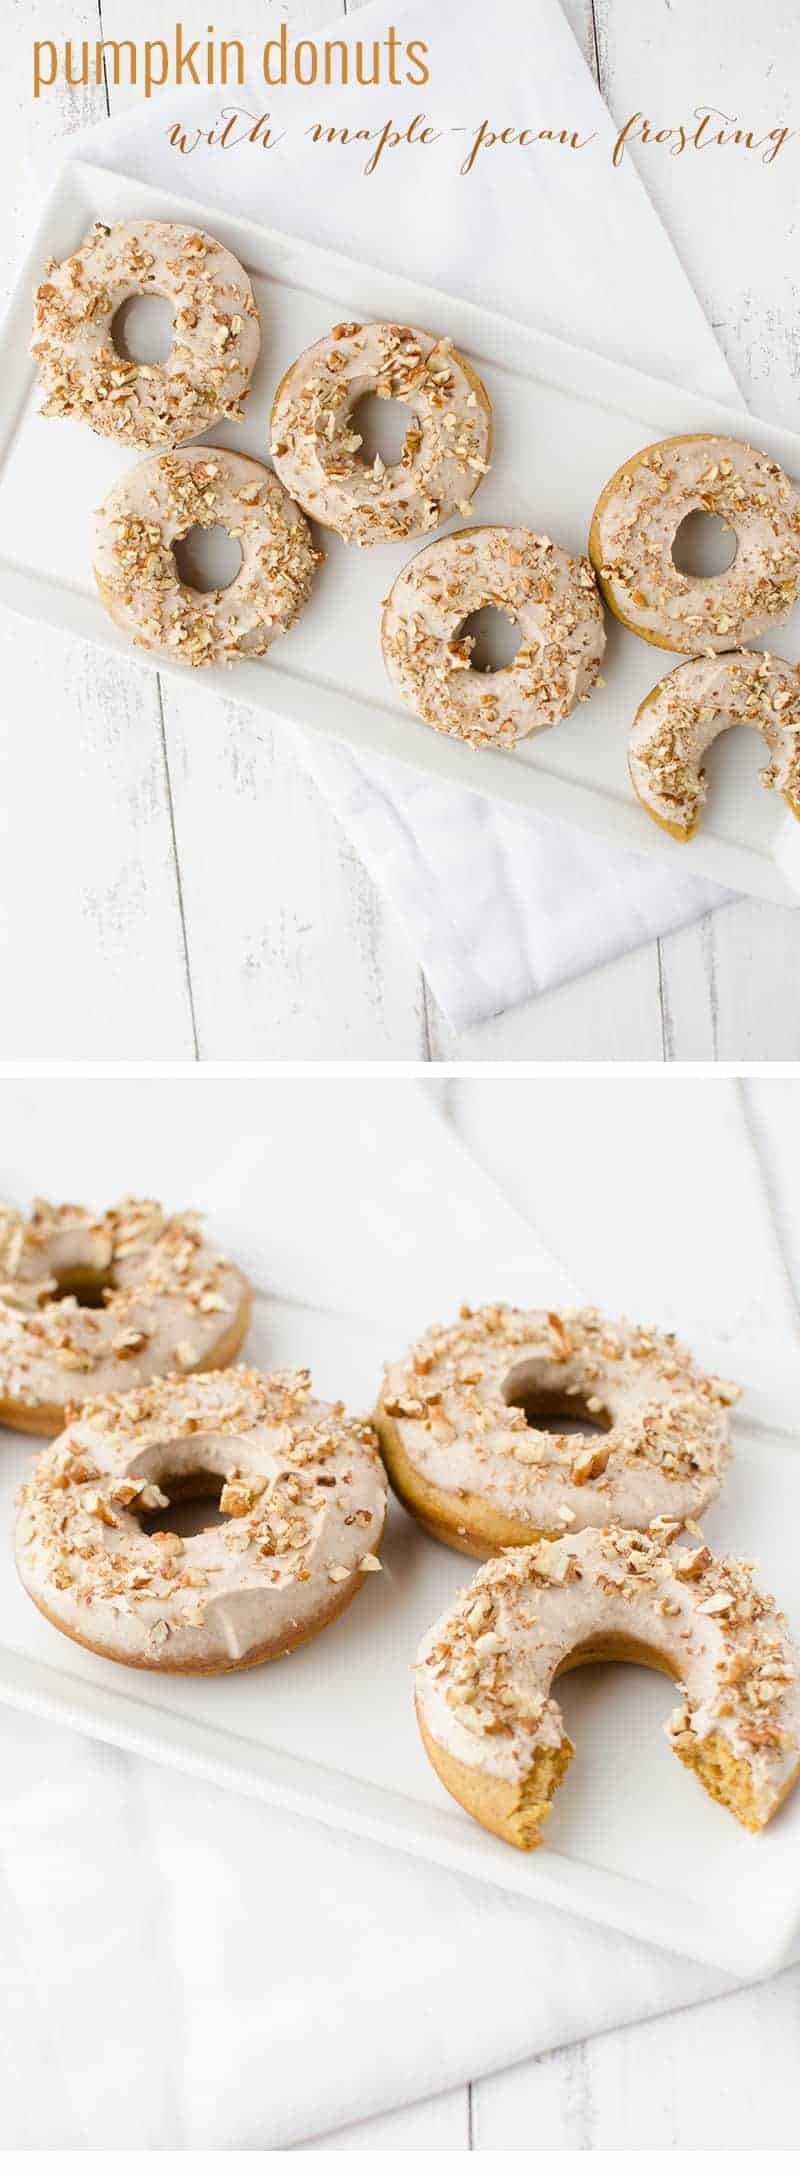 Pumpkin Donuts with Maple-Pecan Frosting! A healthy take on donuts! Save this one for company this fall! | www.delishknowledge.com